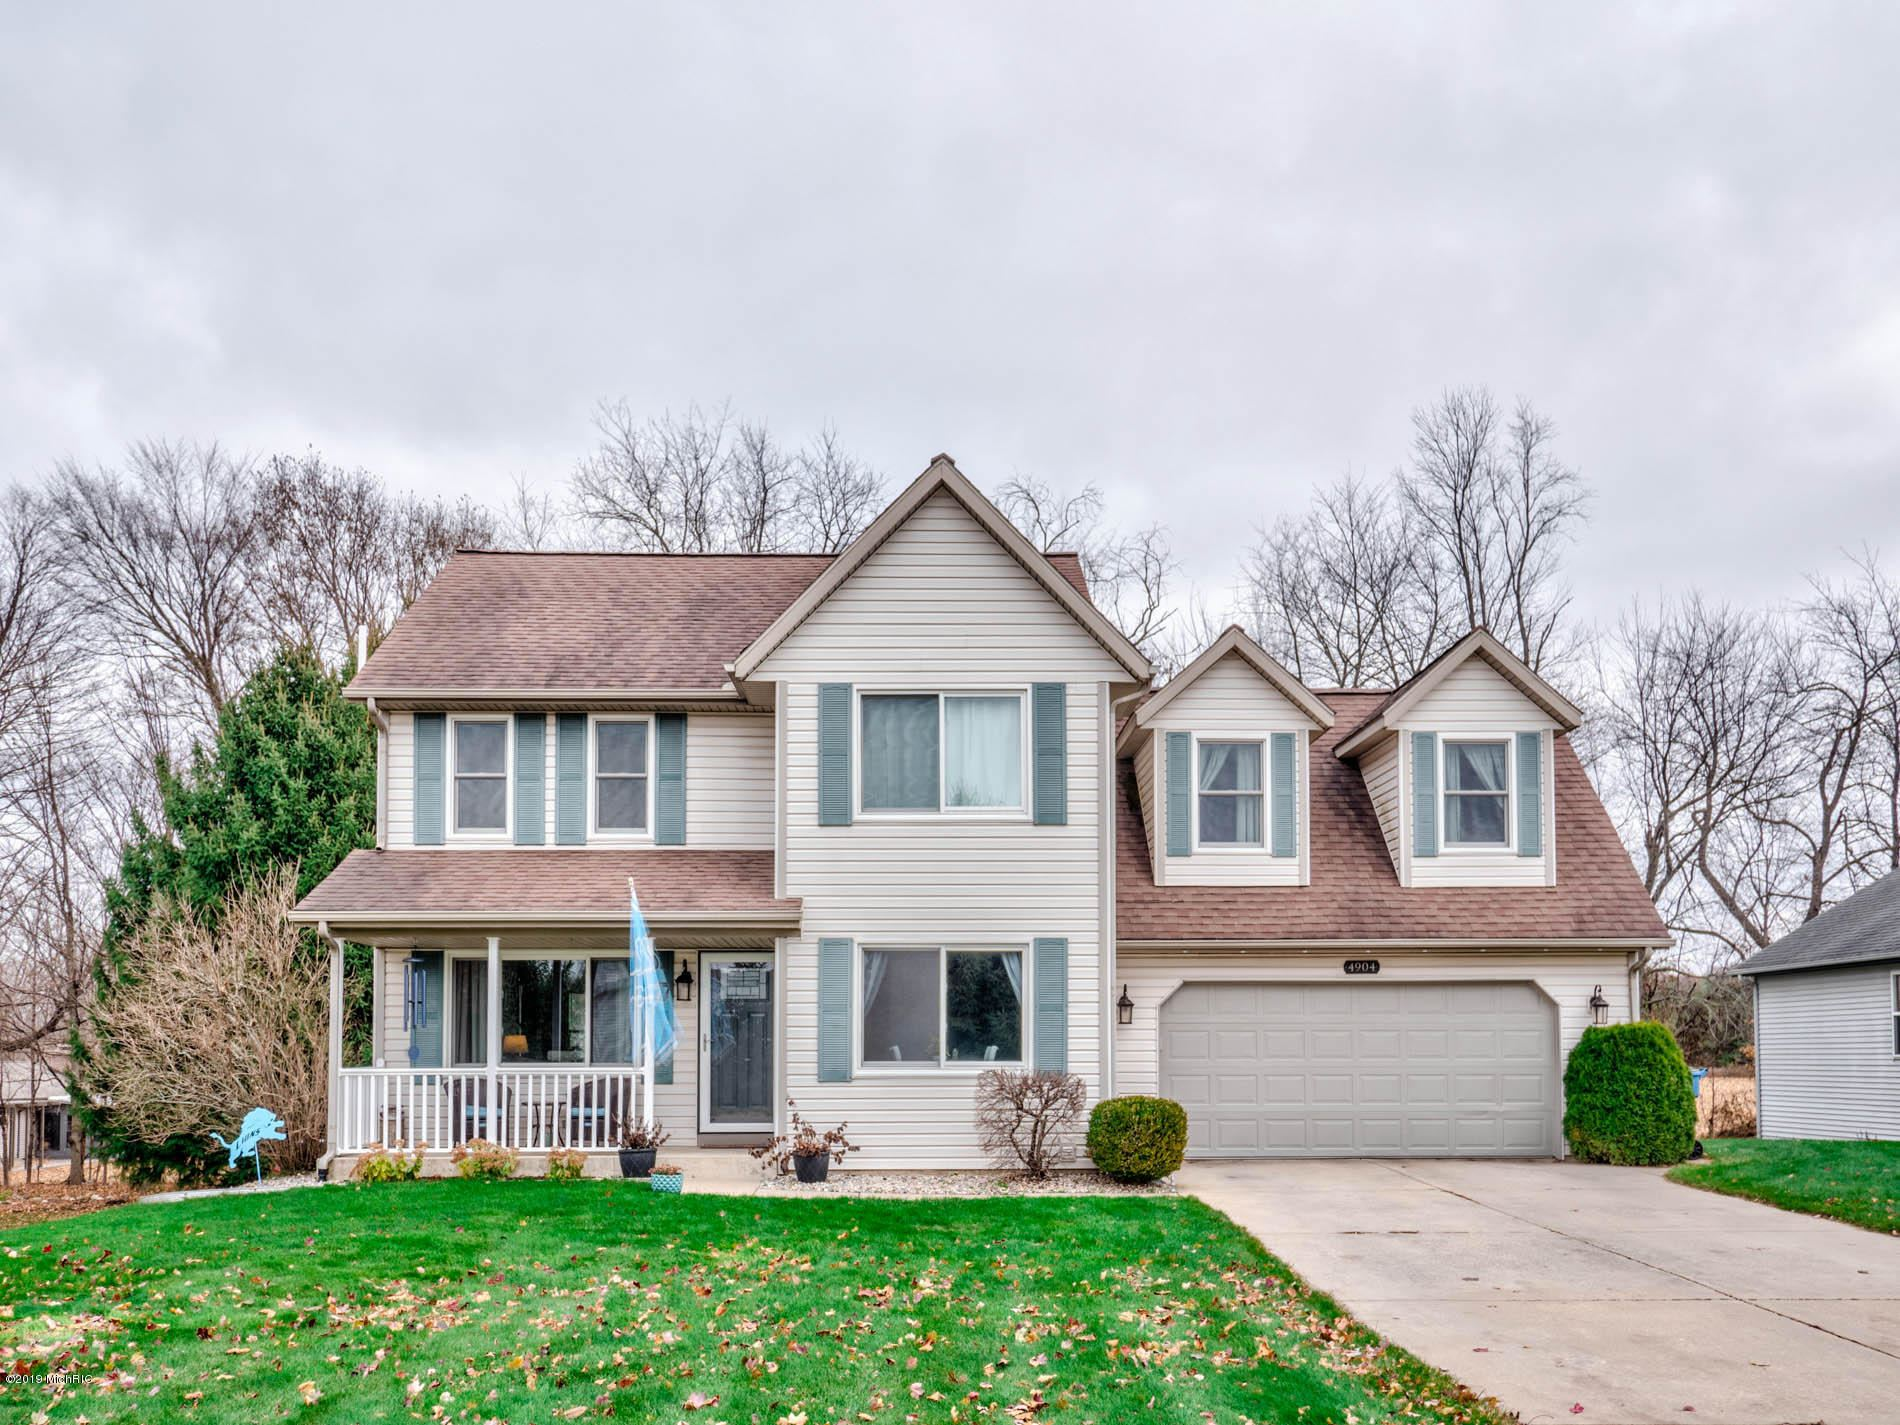 4904 Cypress Creek Lane, Kalamazoo, MI 49004 - #: 19056069